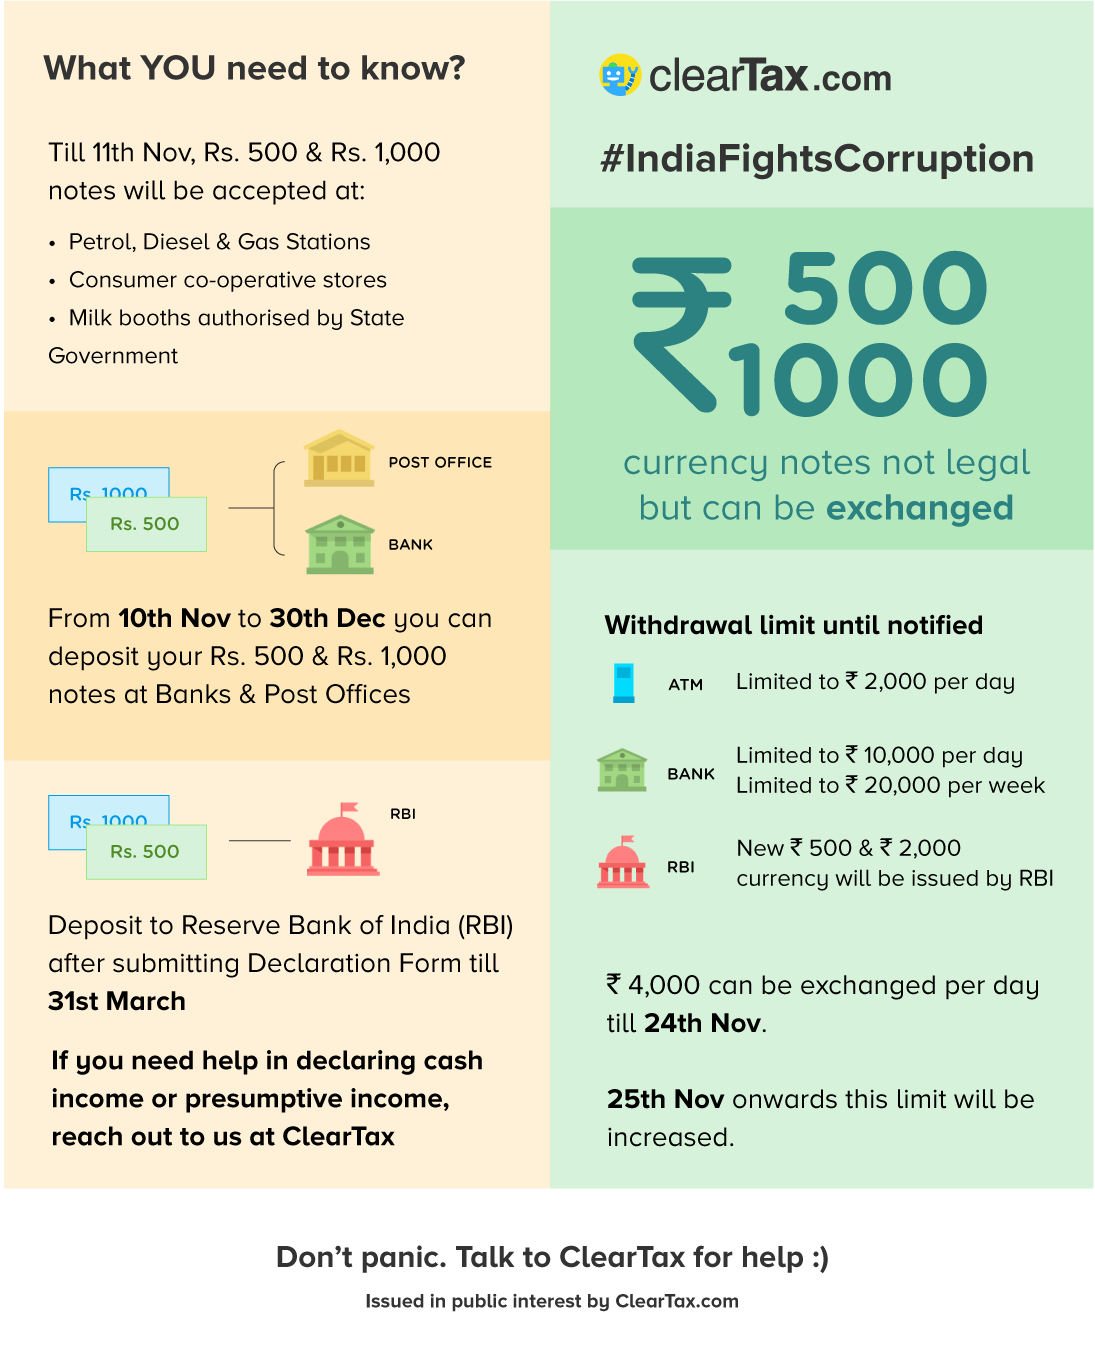 India fights corruption currency recall